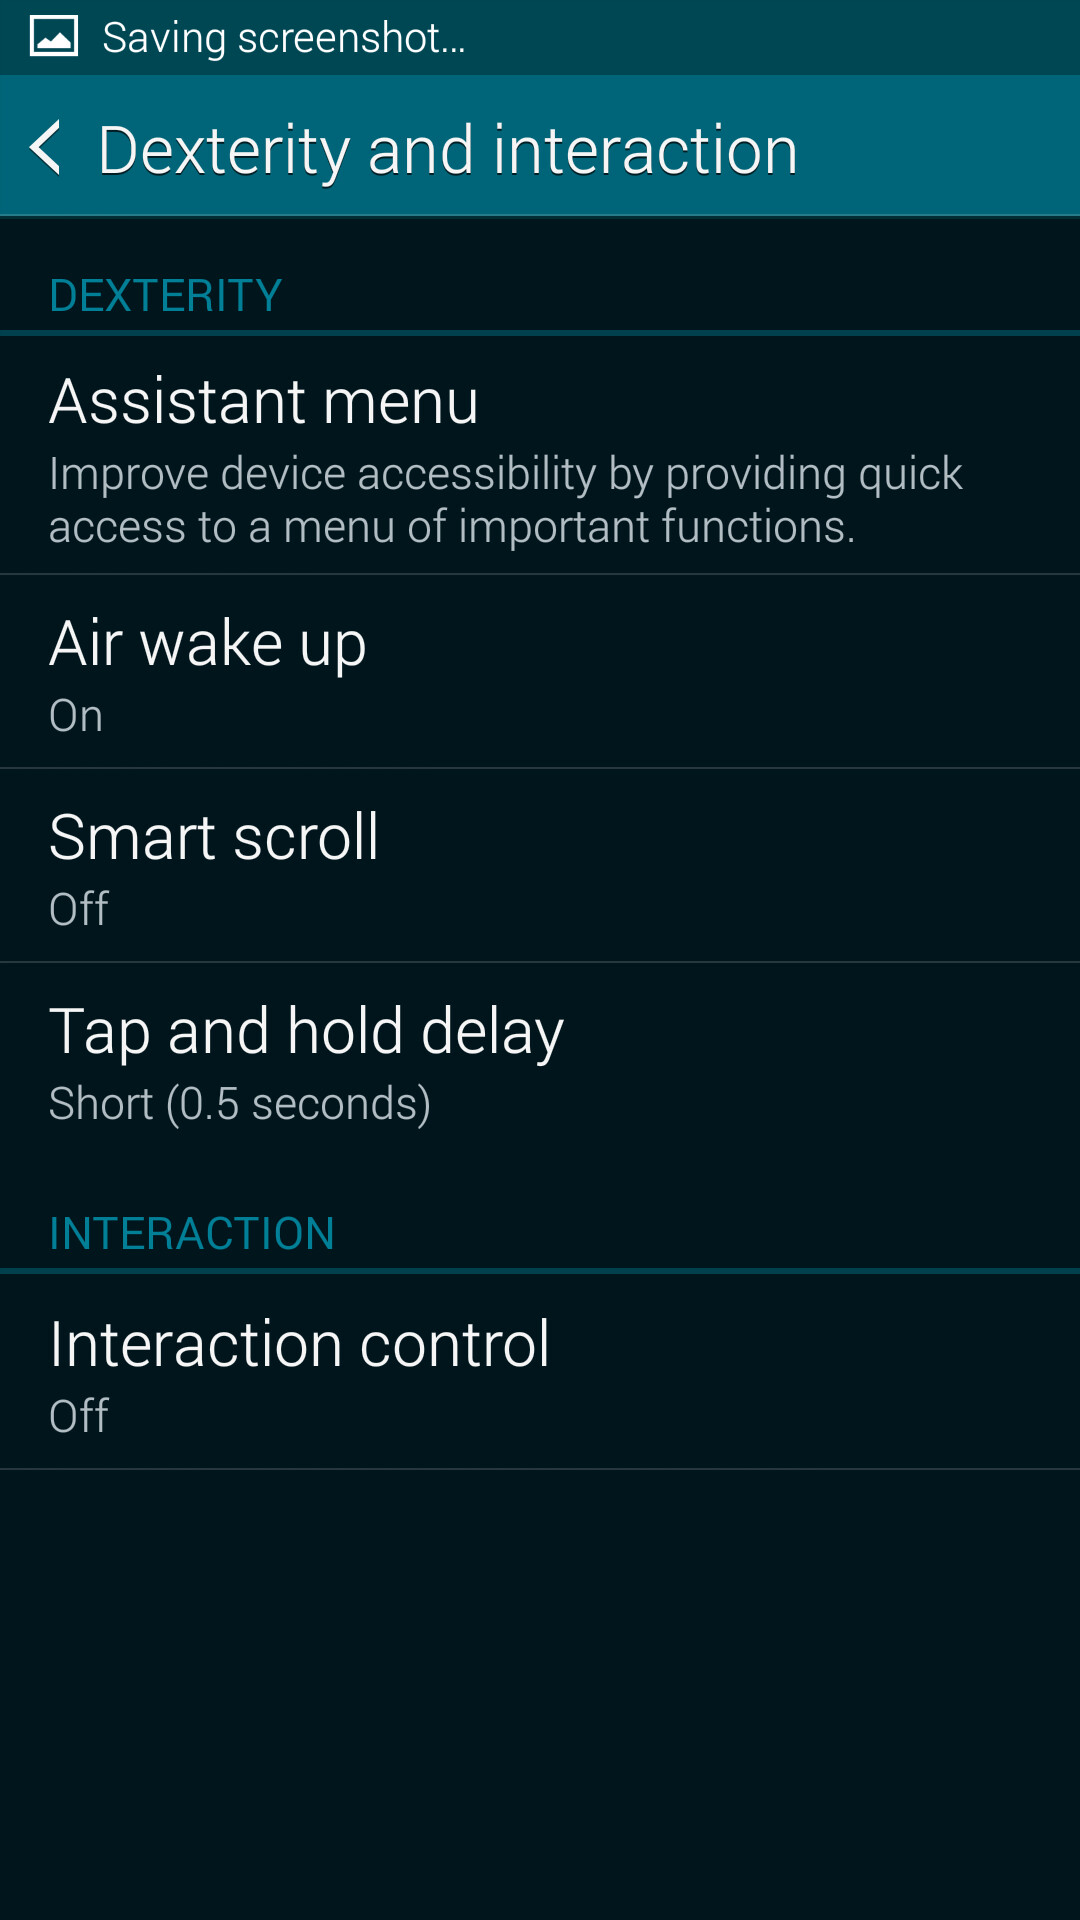 how to turn off galaxy s5 without screen